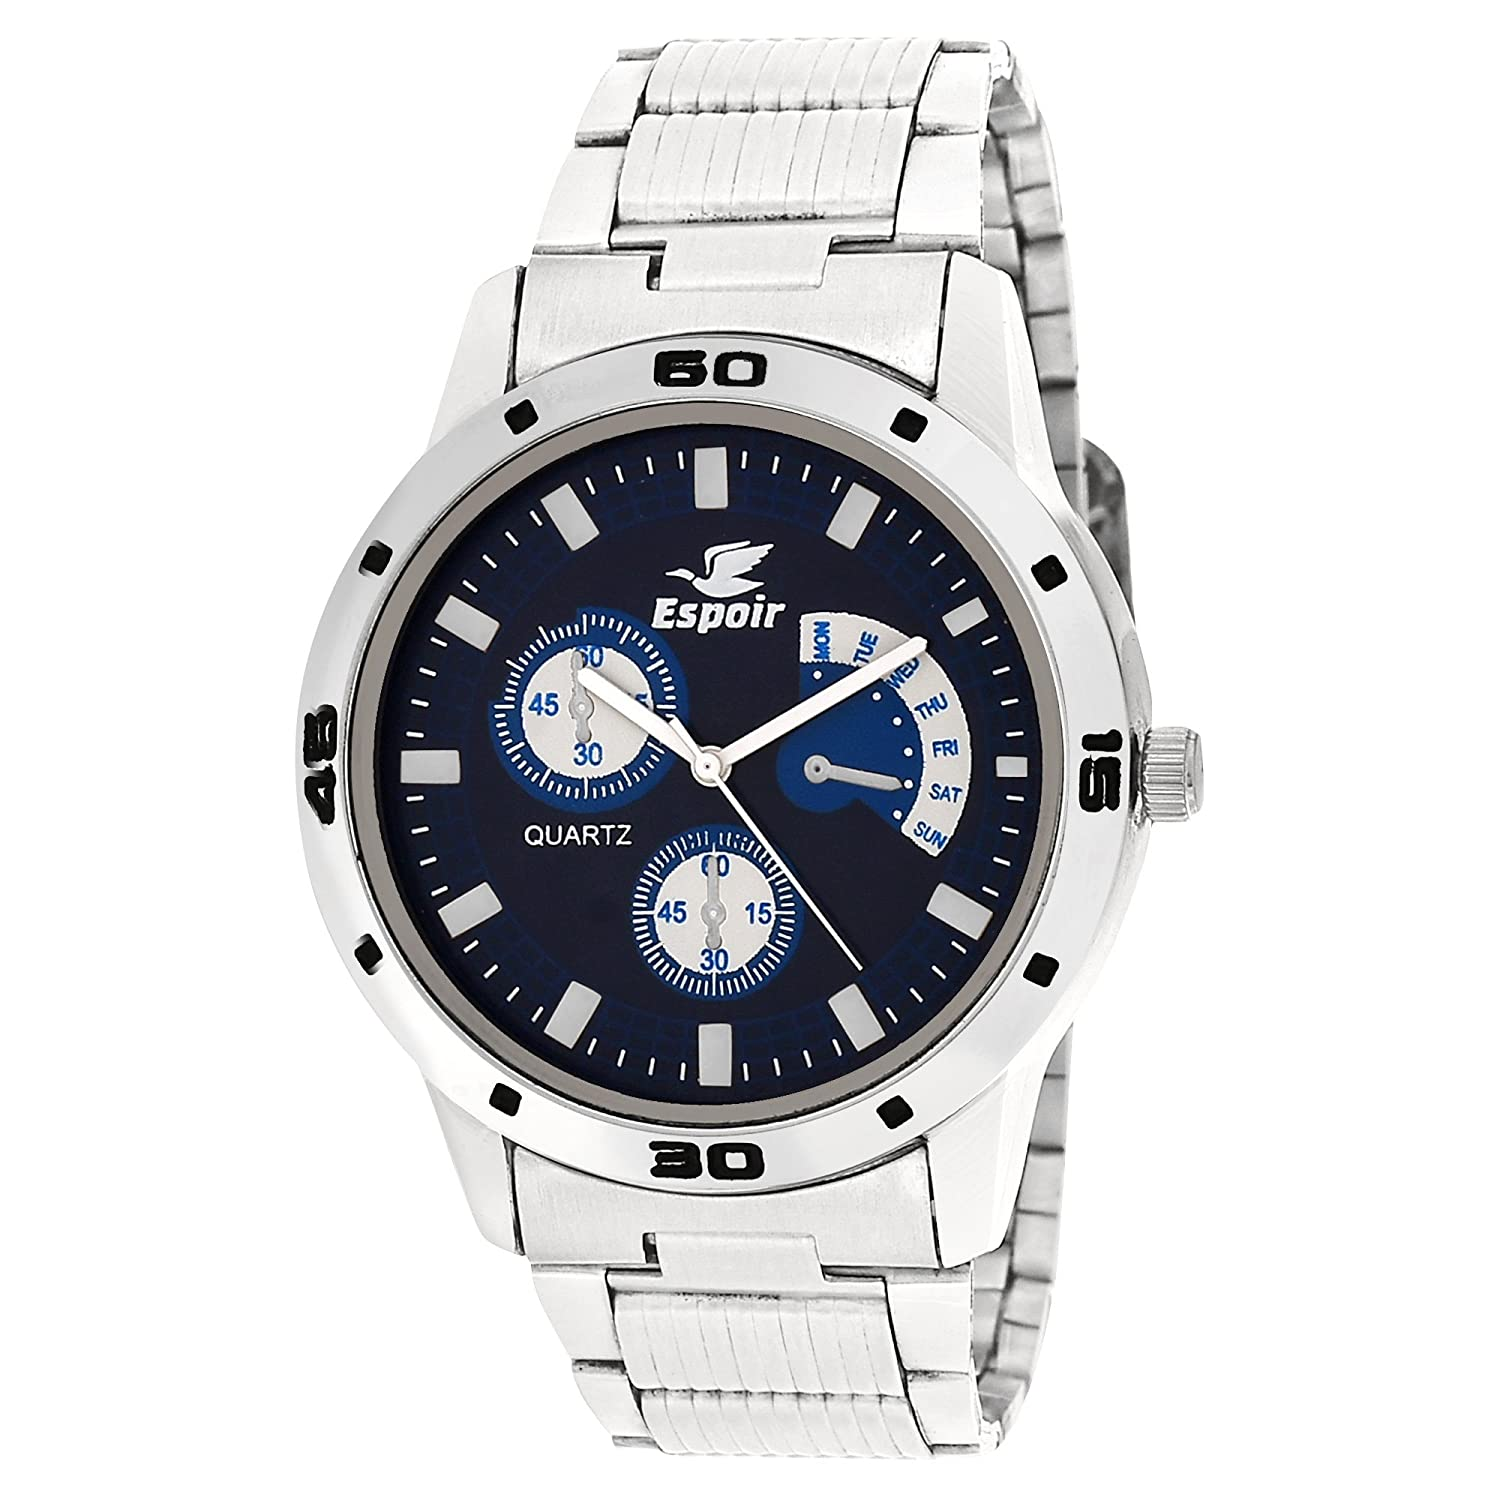 Espoir Analogue Blue Dial Watch for Men